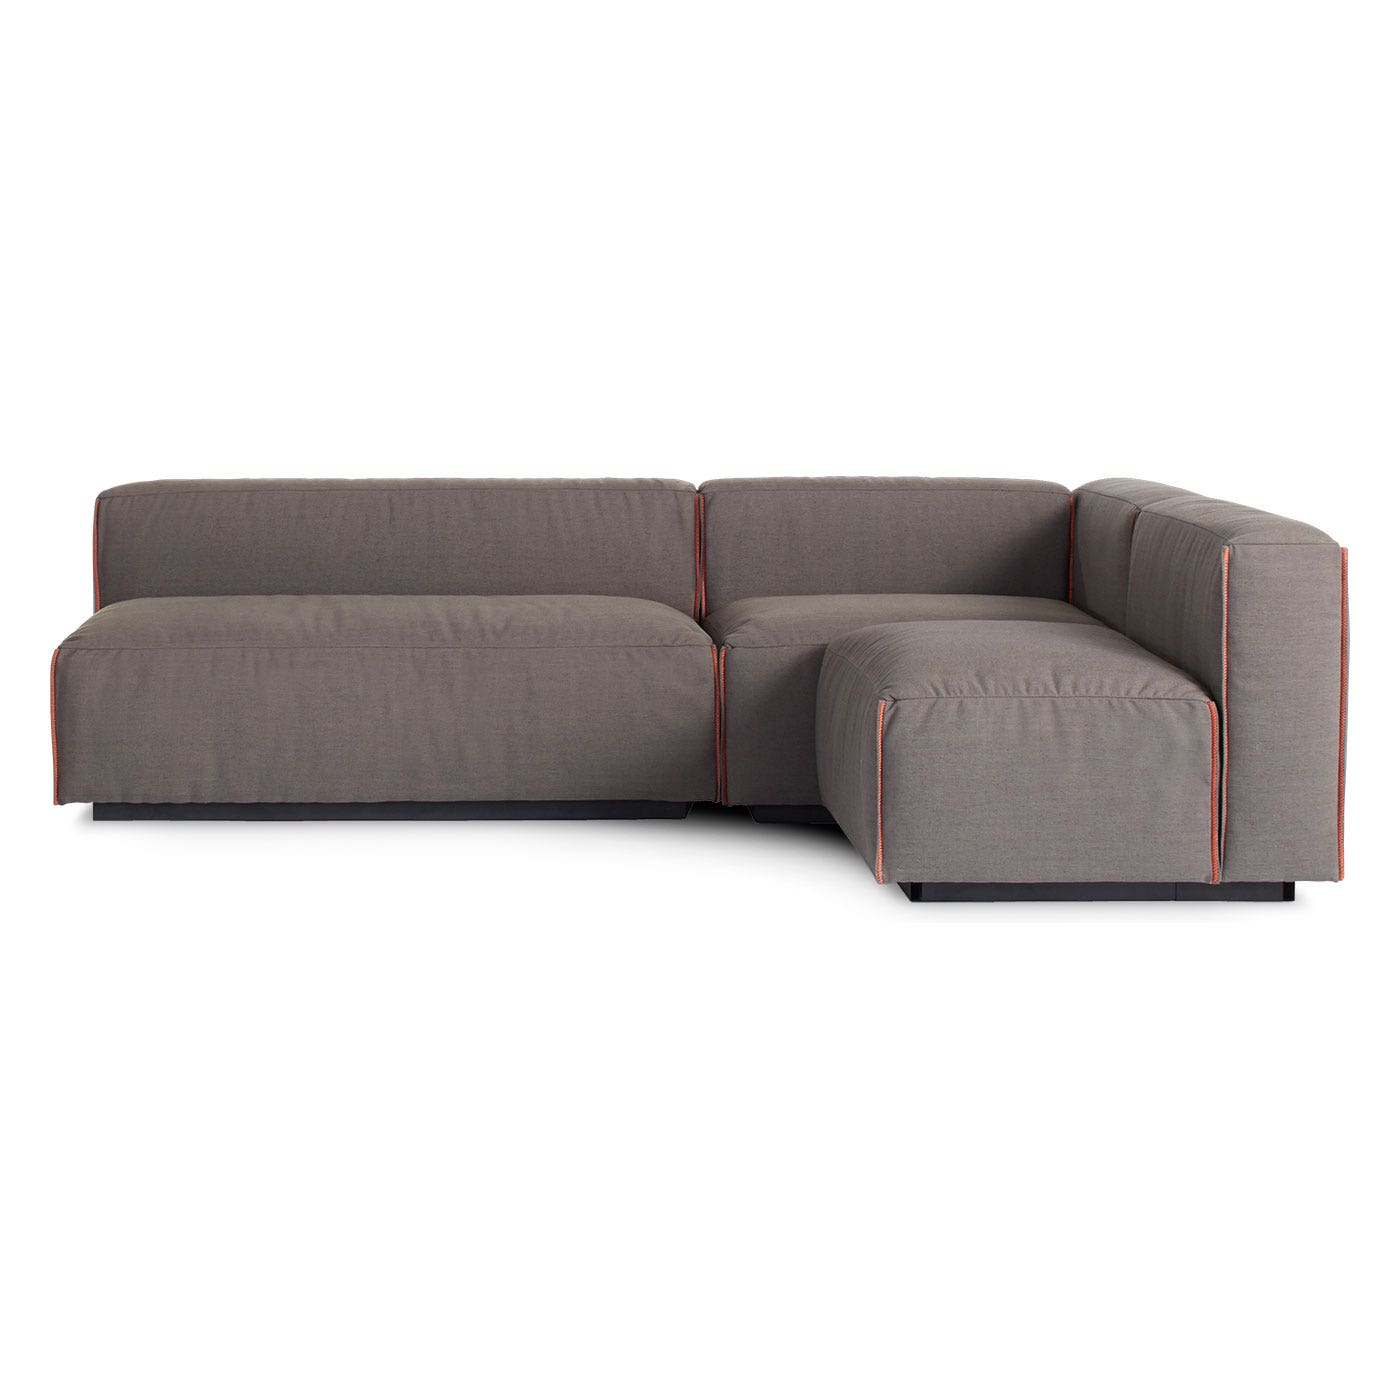 Cleon Medium Sectional Armless Sectional